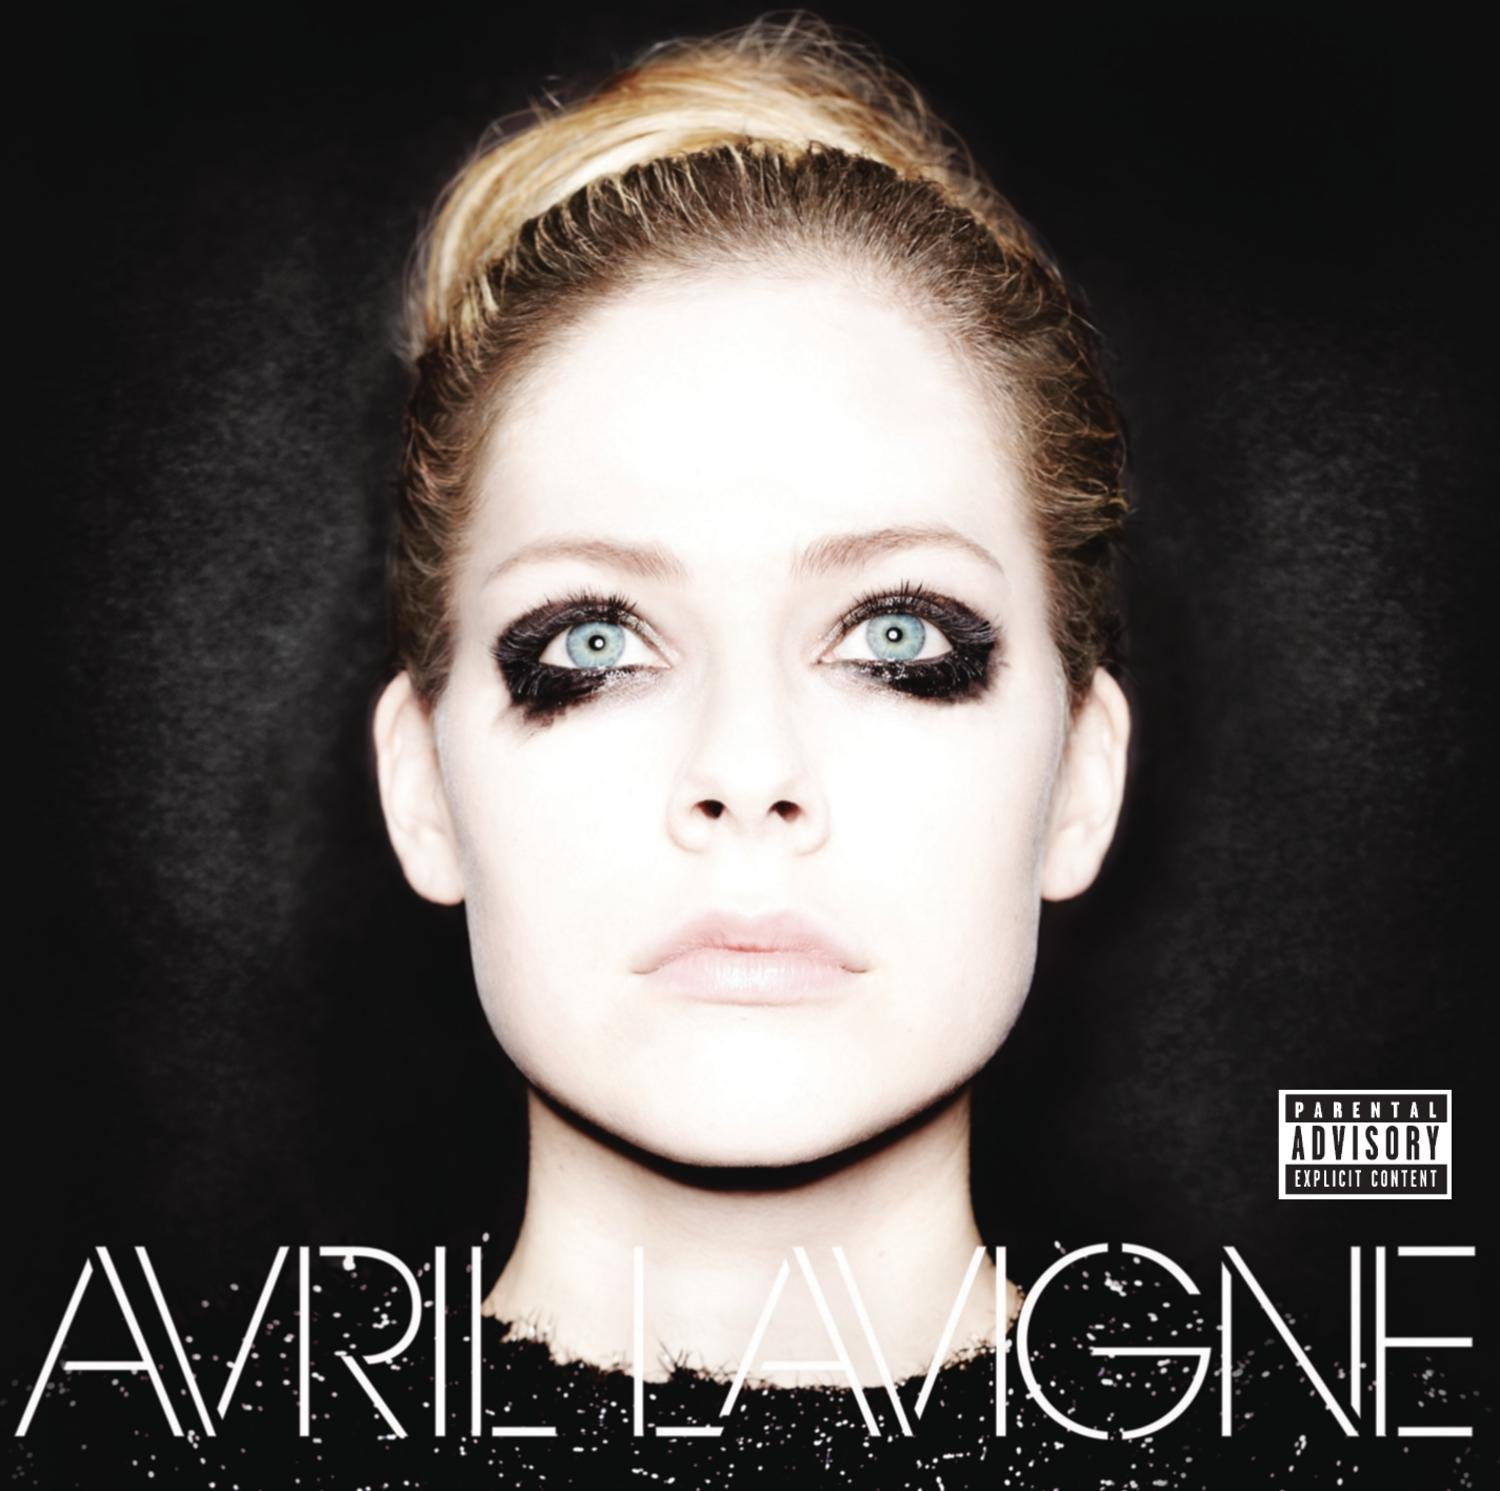 CD : Avril Lavigne - Avril Lavigne [Explicit Content] (CD)